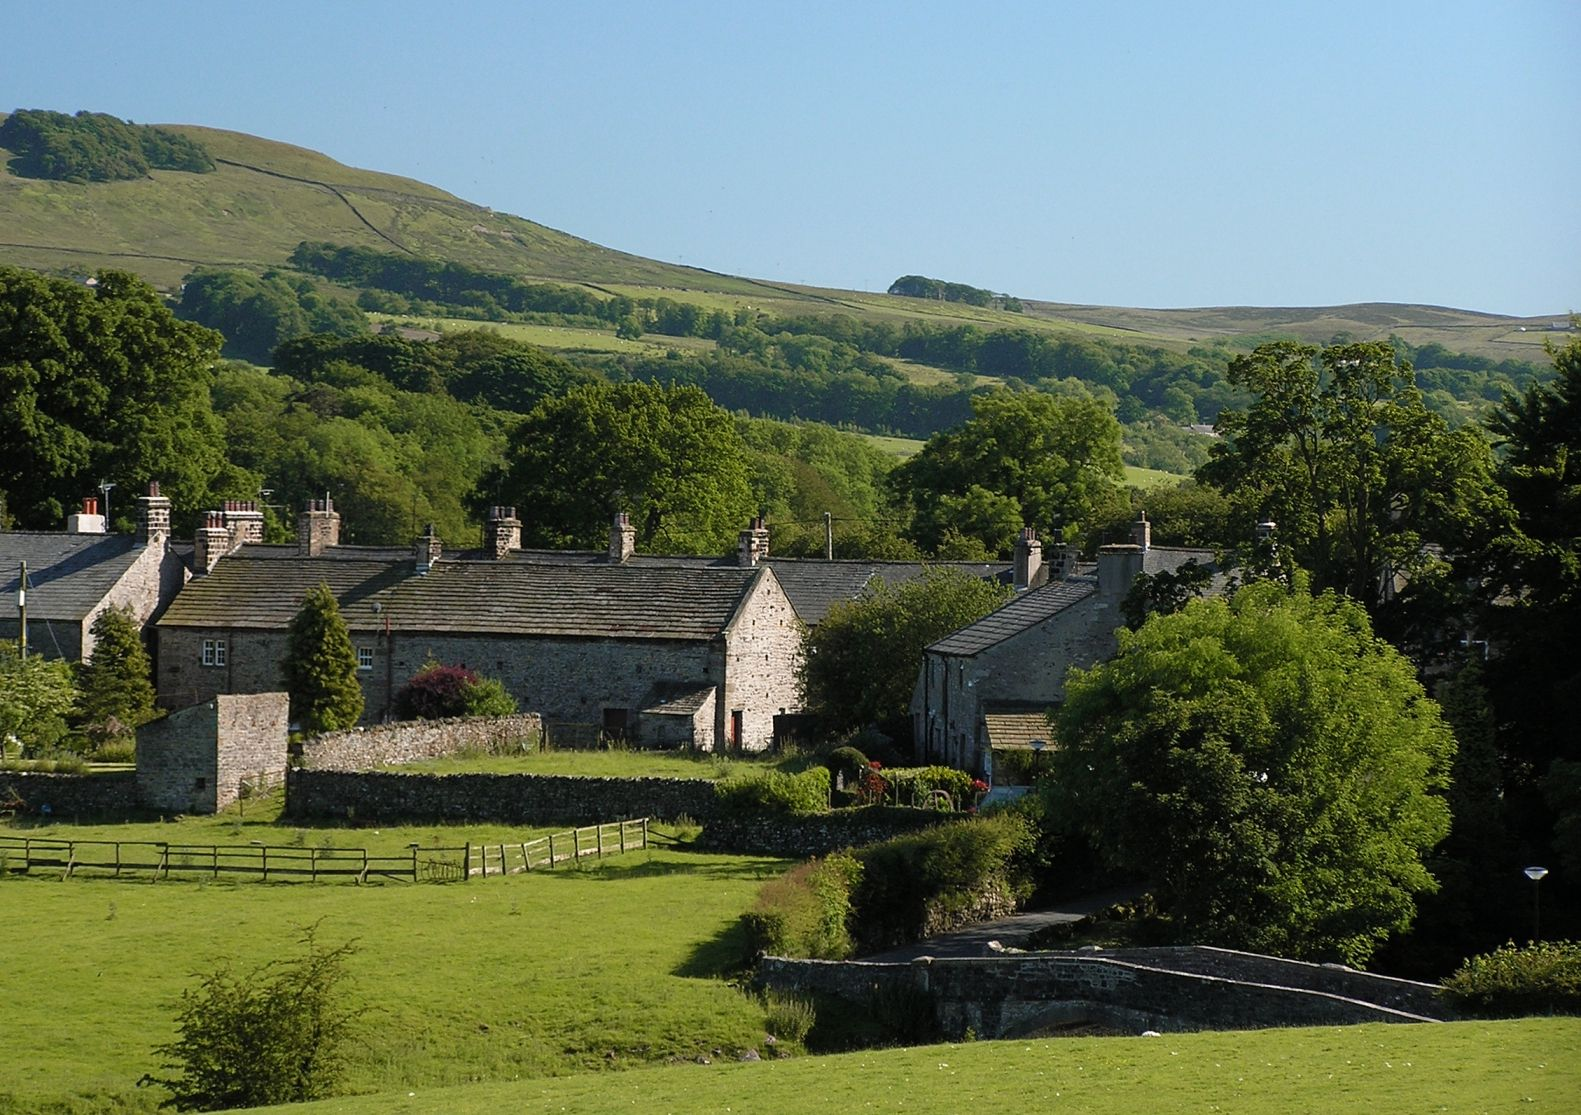 Hotels, Cottages, B&Bs & Glamping in Lancashire